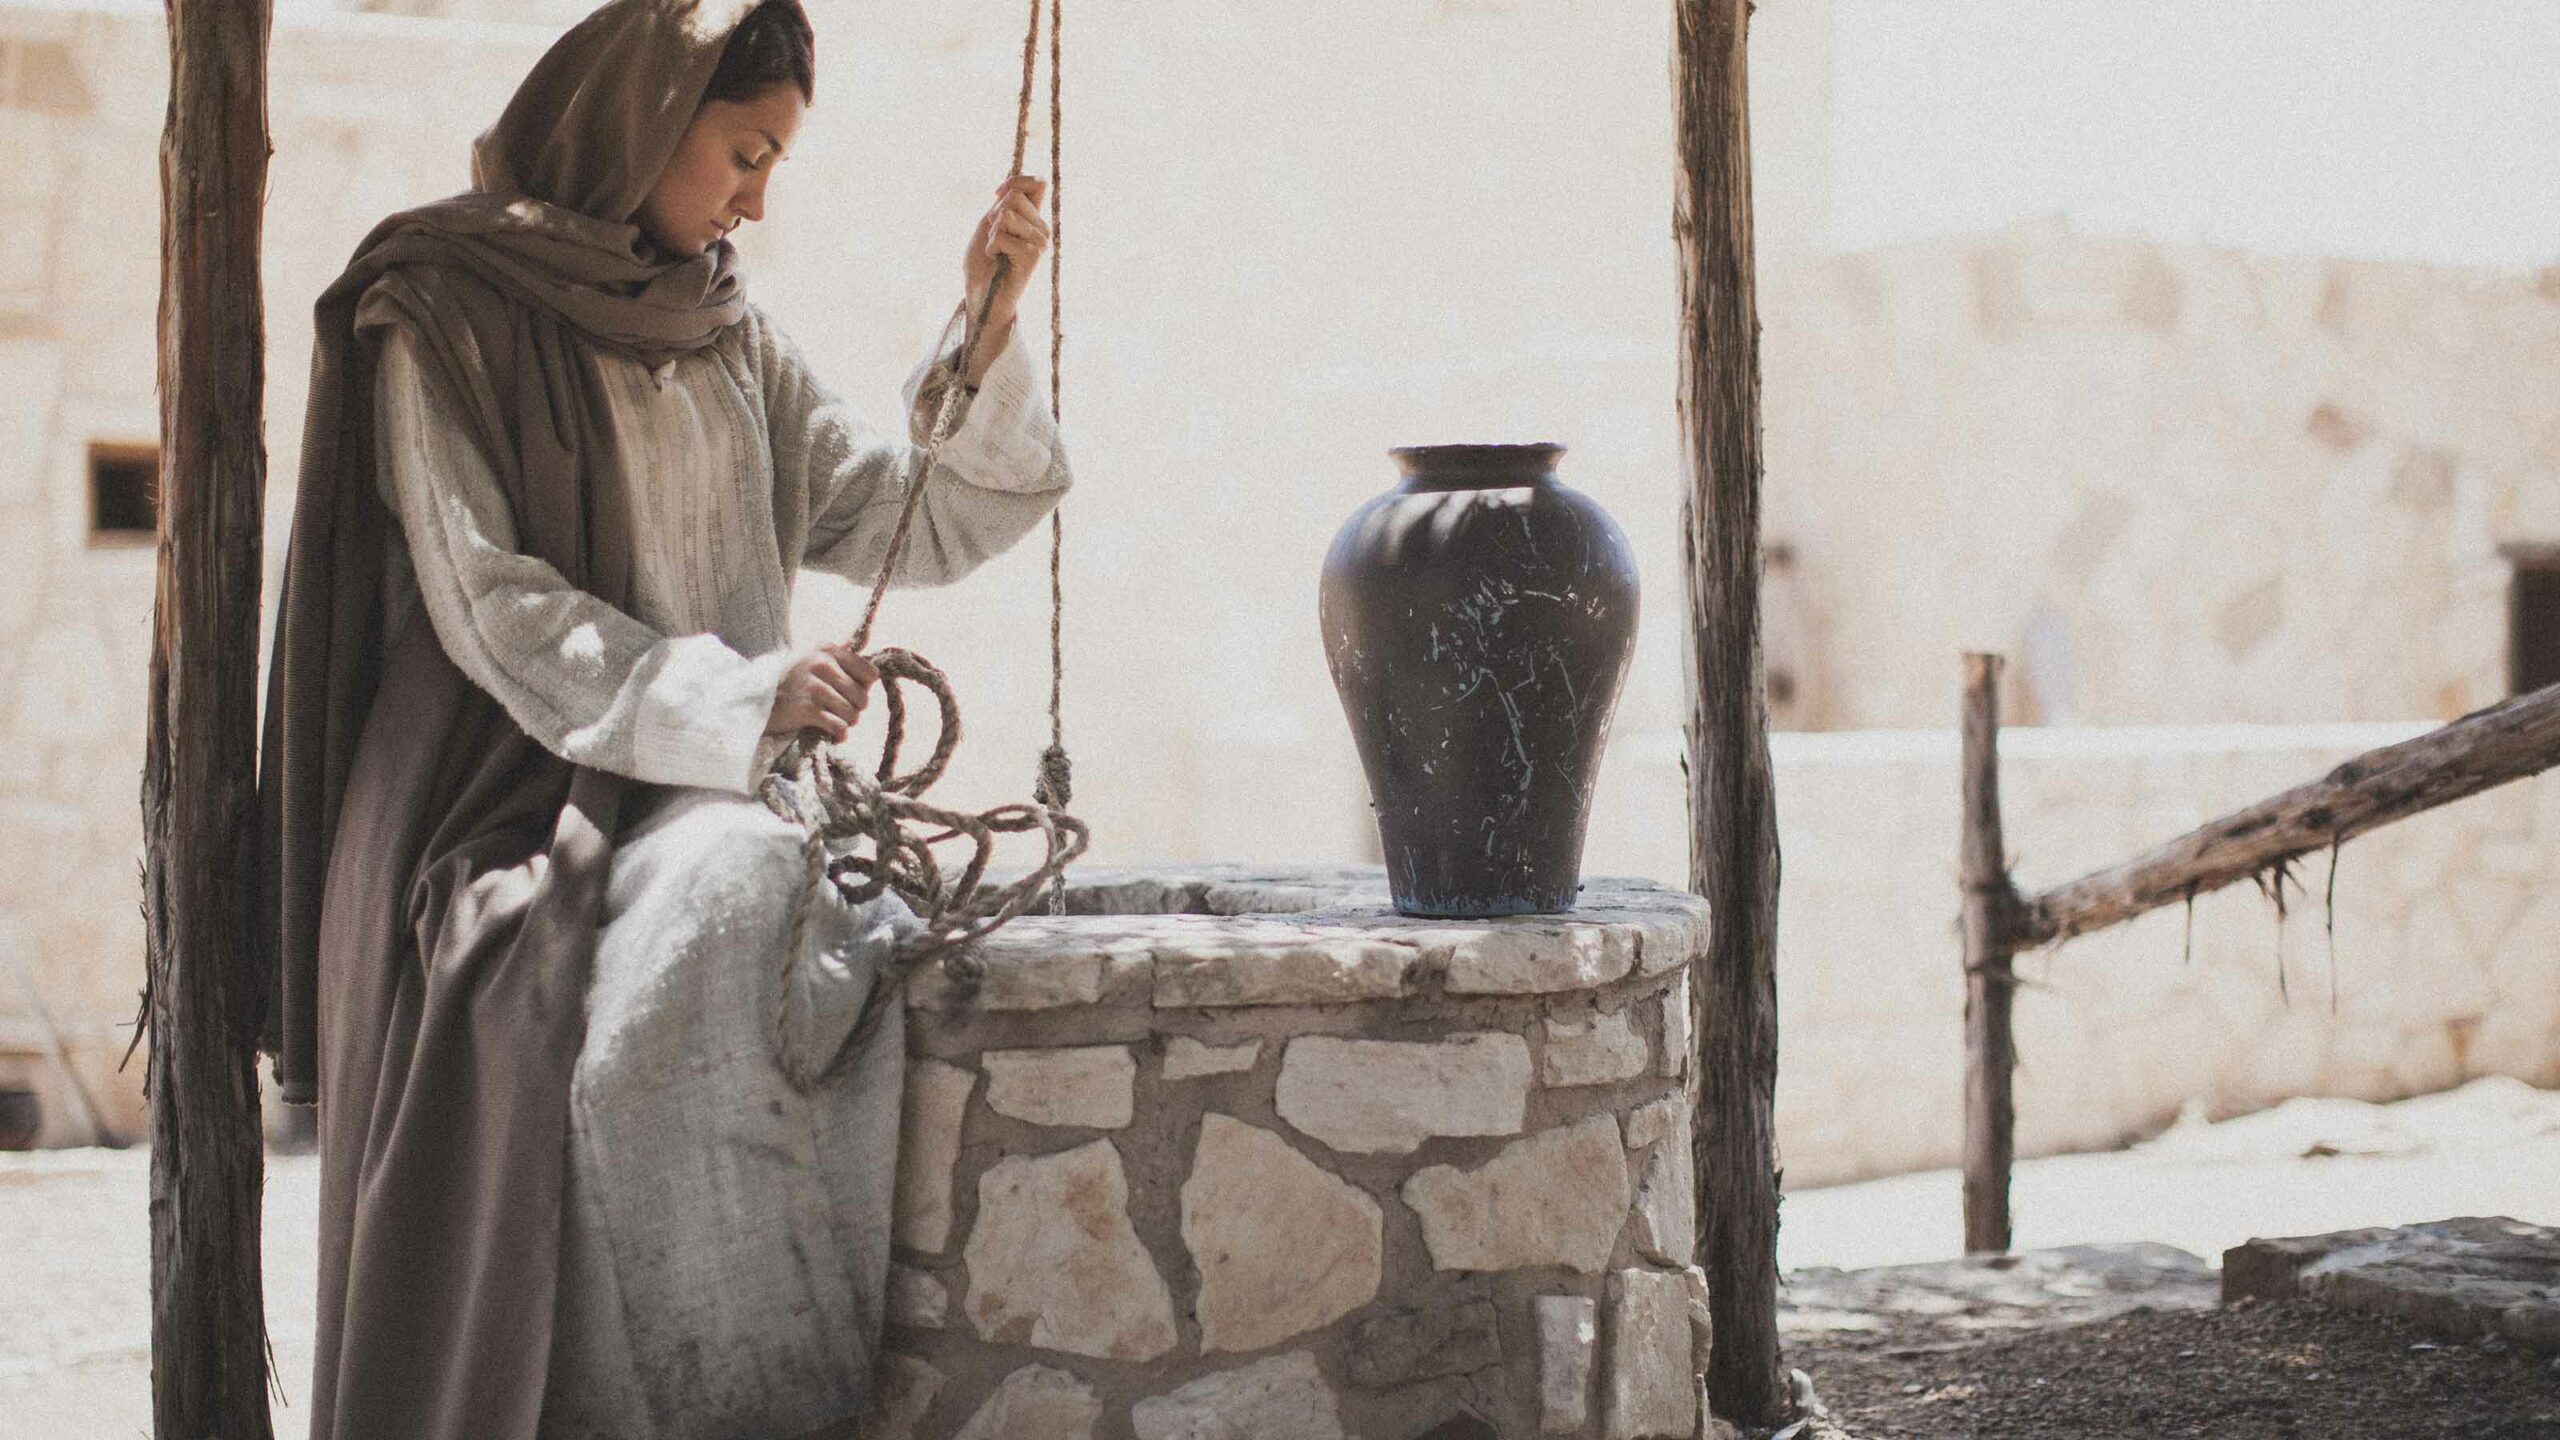 The Woman At The Well: Freedom in Truth